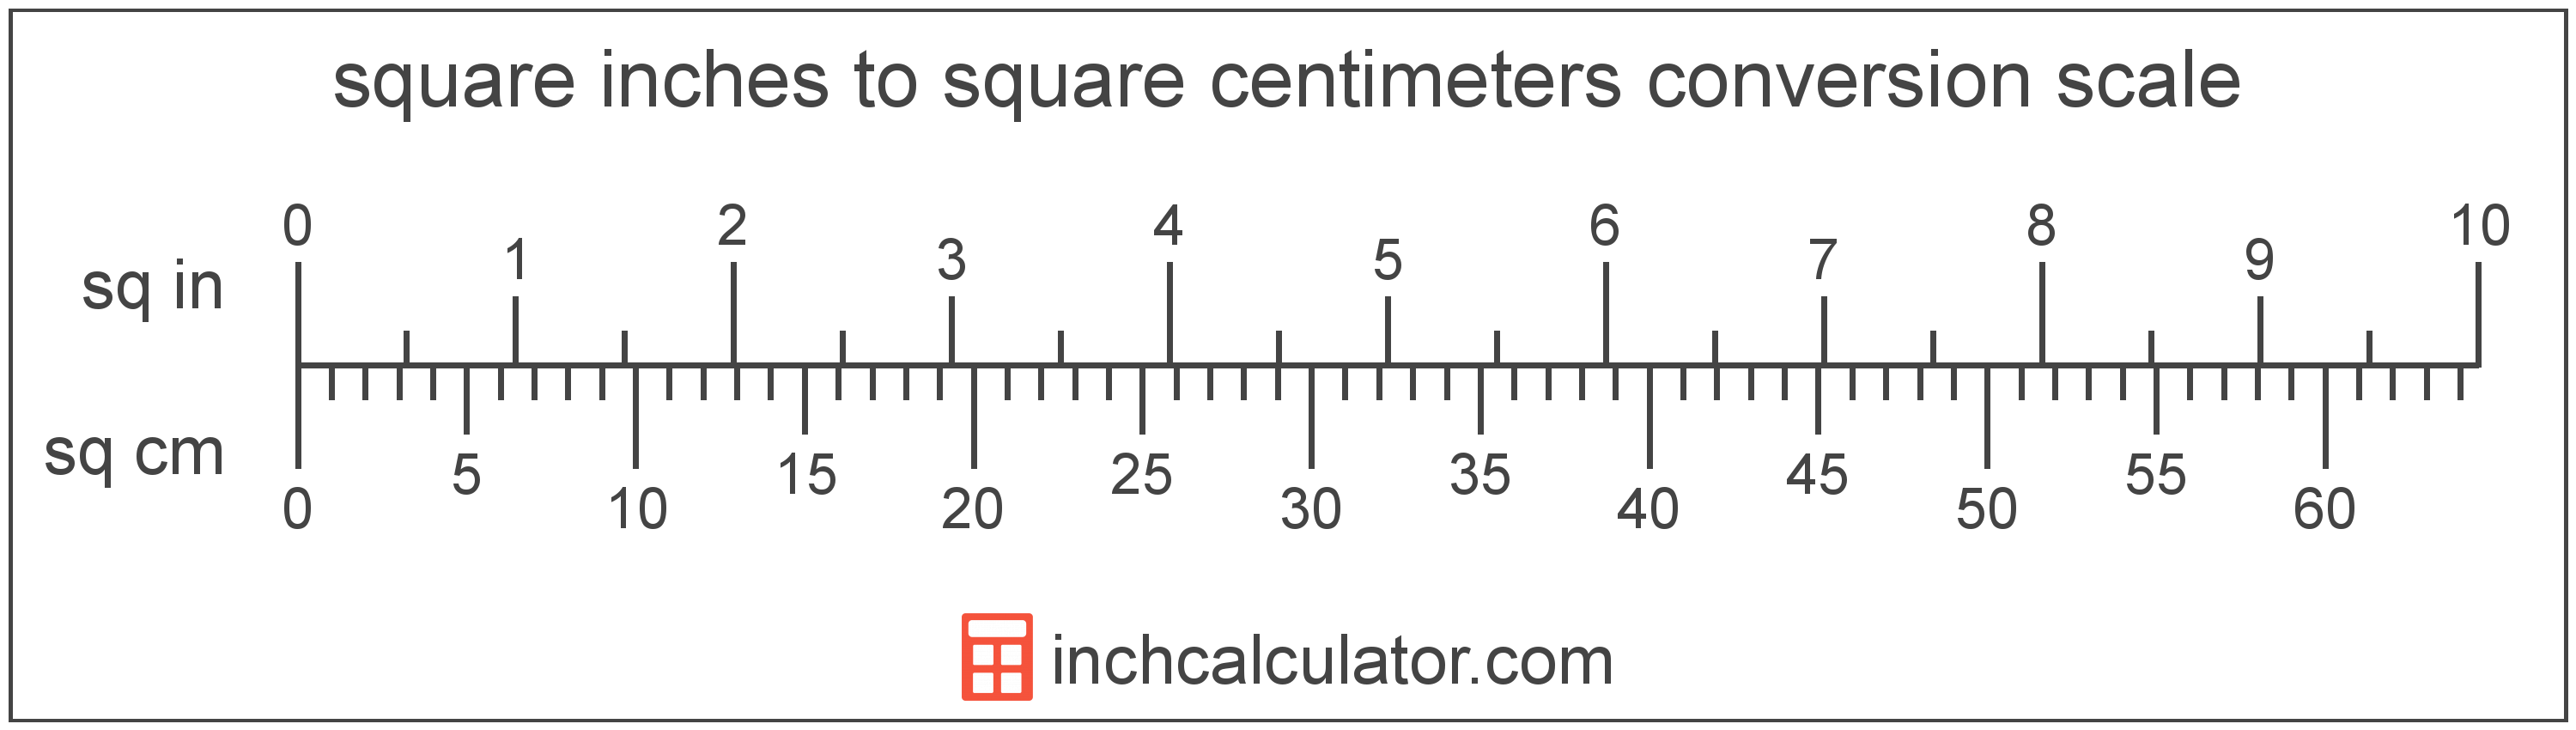 conversion scale showing square centimeters and equivalent square inches area values